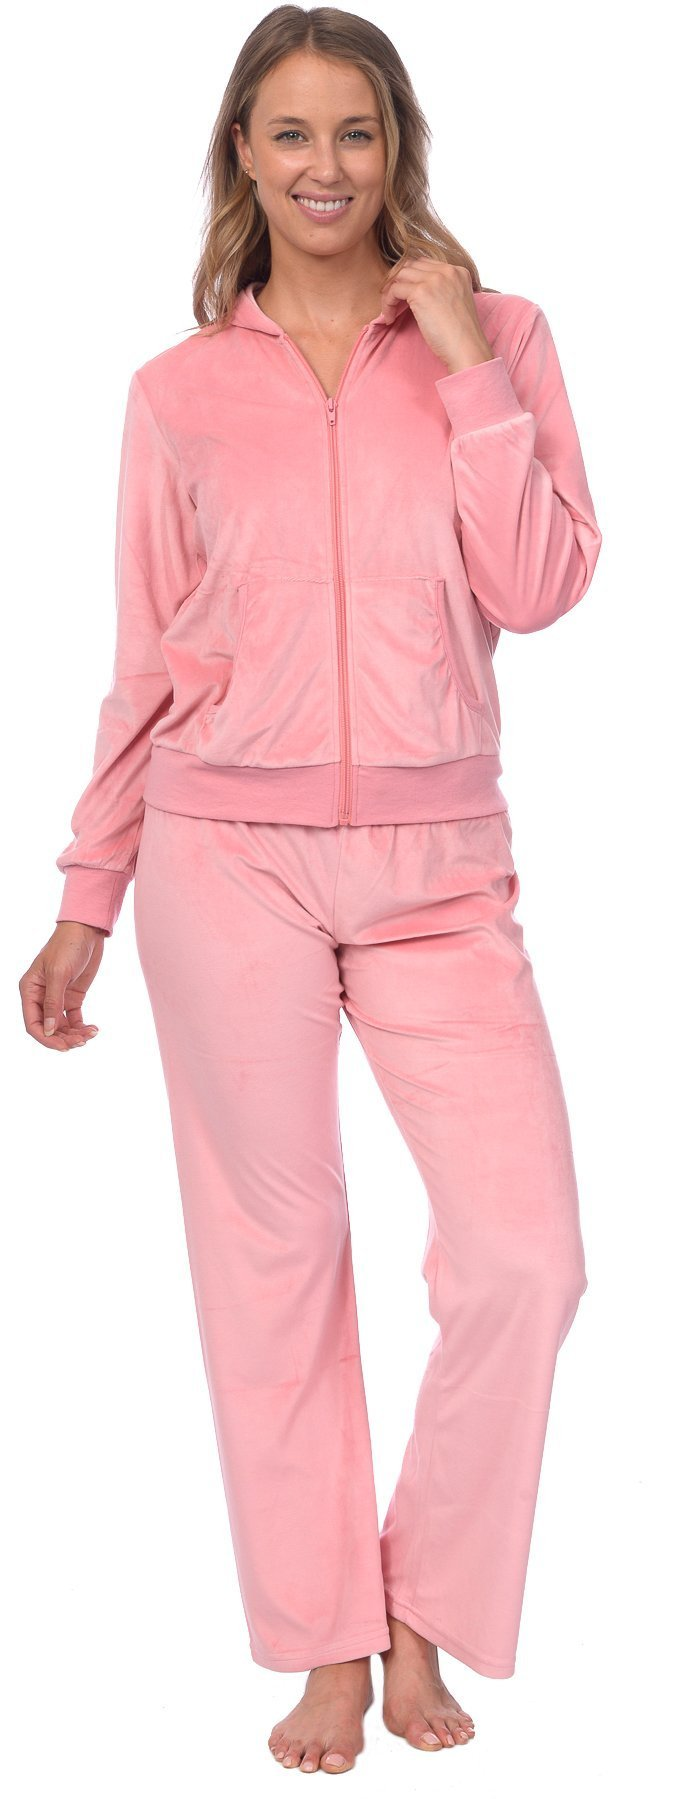 Pink Lady Womens Soft Velour Zip Hoodie and Bottoms Lounge Tracksuit (Pink Icing, M)